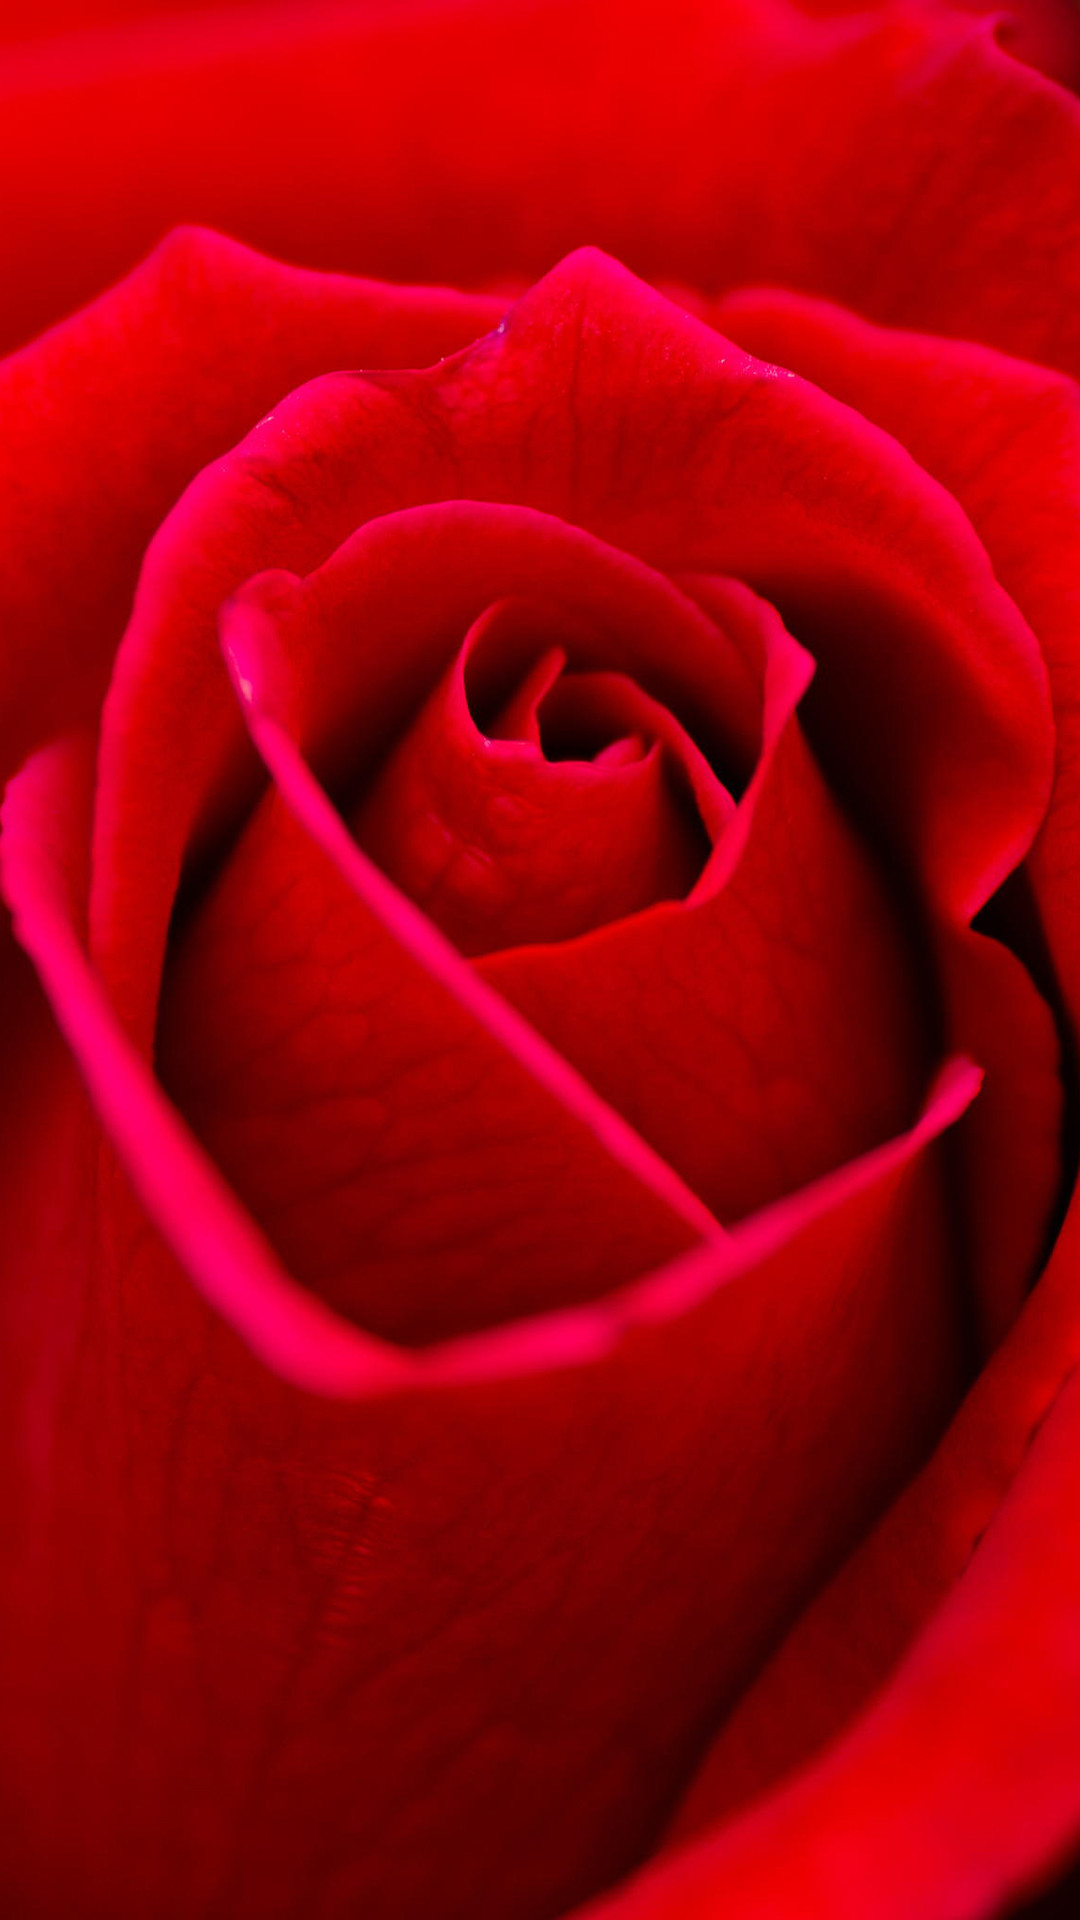 Red roses wallpapers 62 background pictures 2560x1600 red roses flowers wallpaper red rose wallpapers free download izmirmasajfo